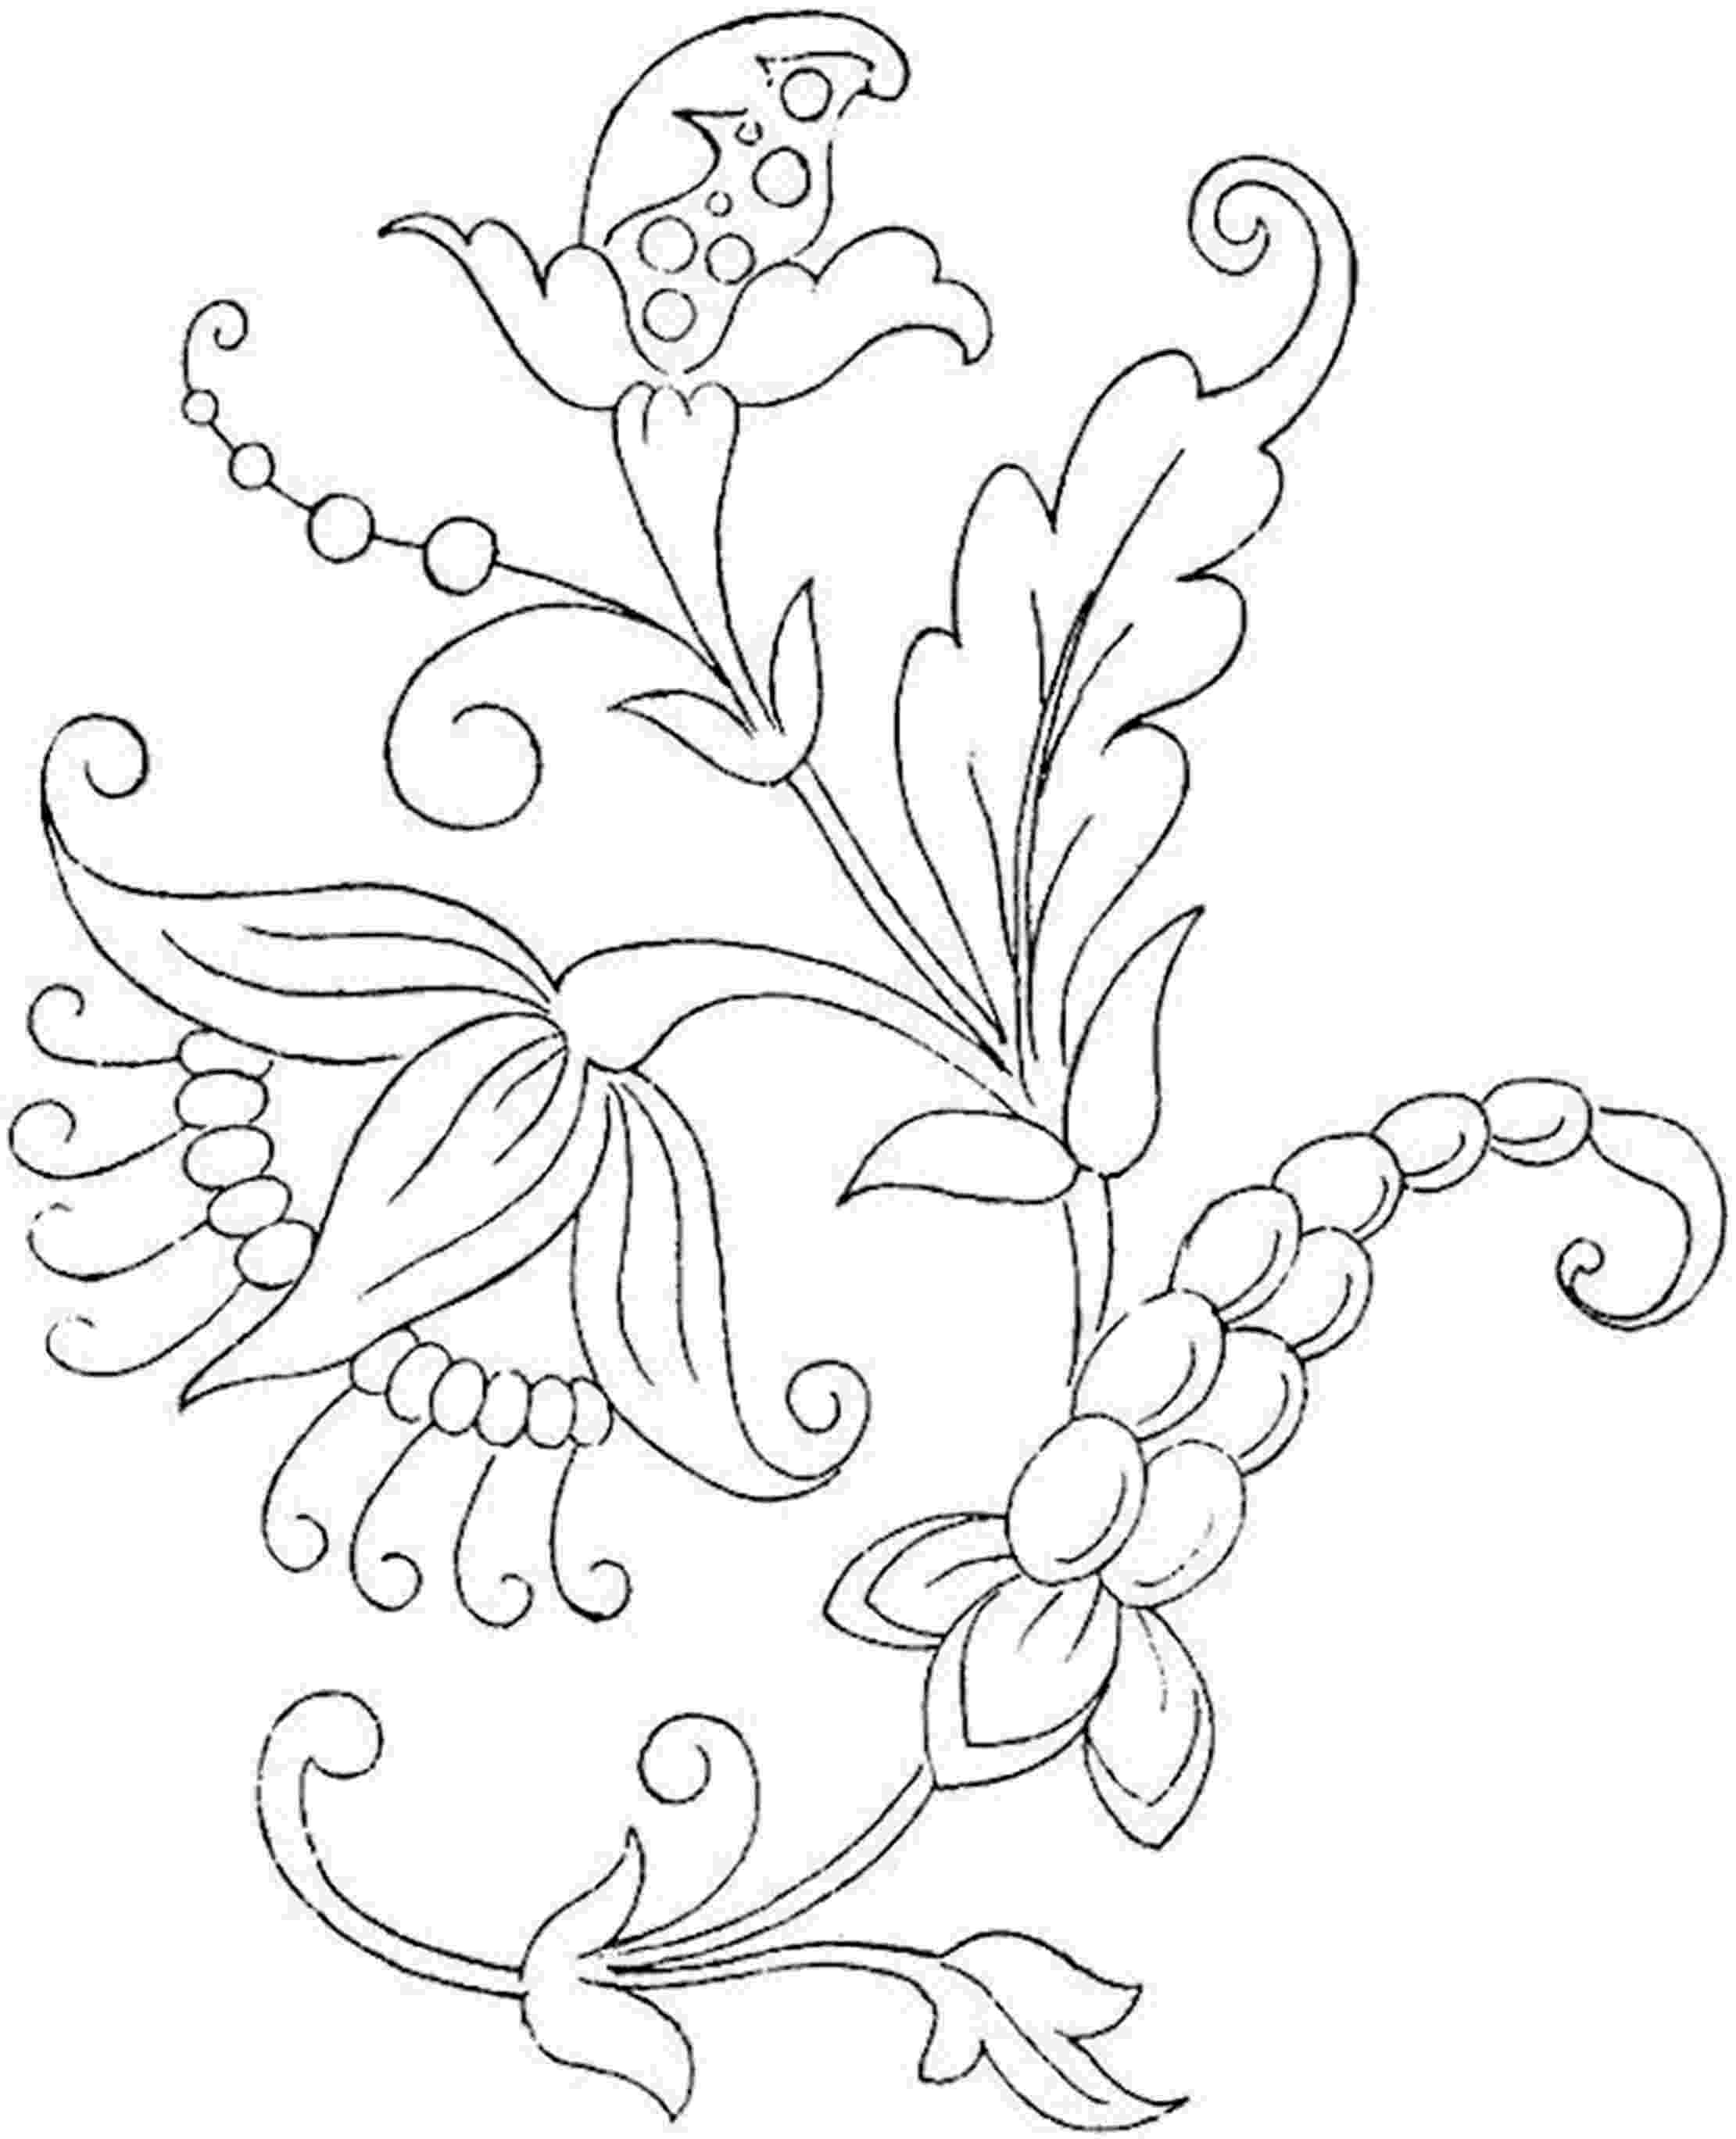 pics of roses to color roses coloring pages getcoloringpagescom roses to pics of color